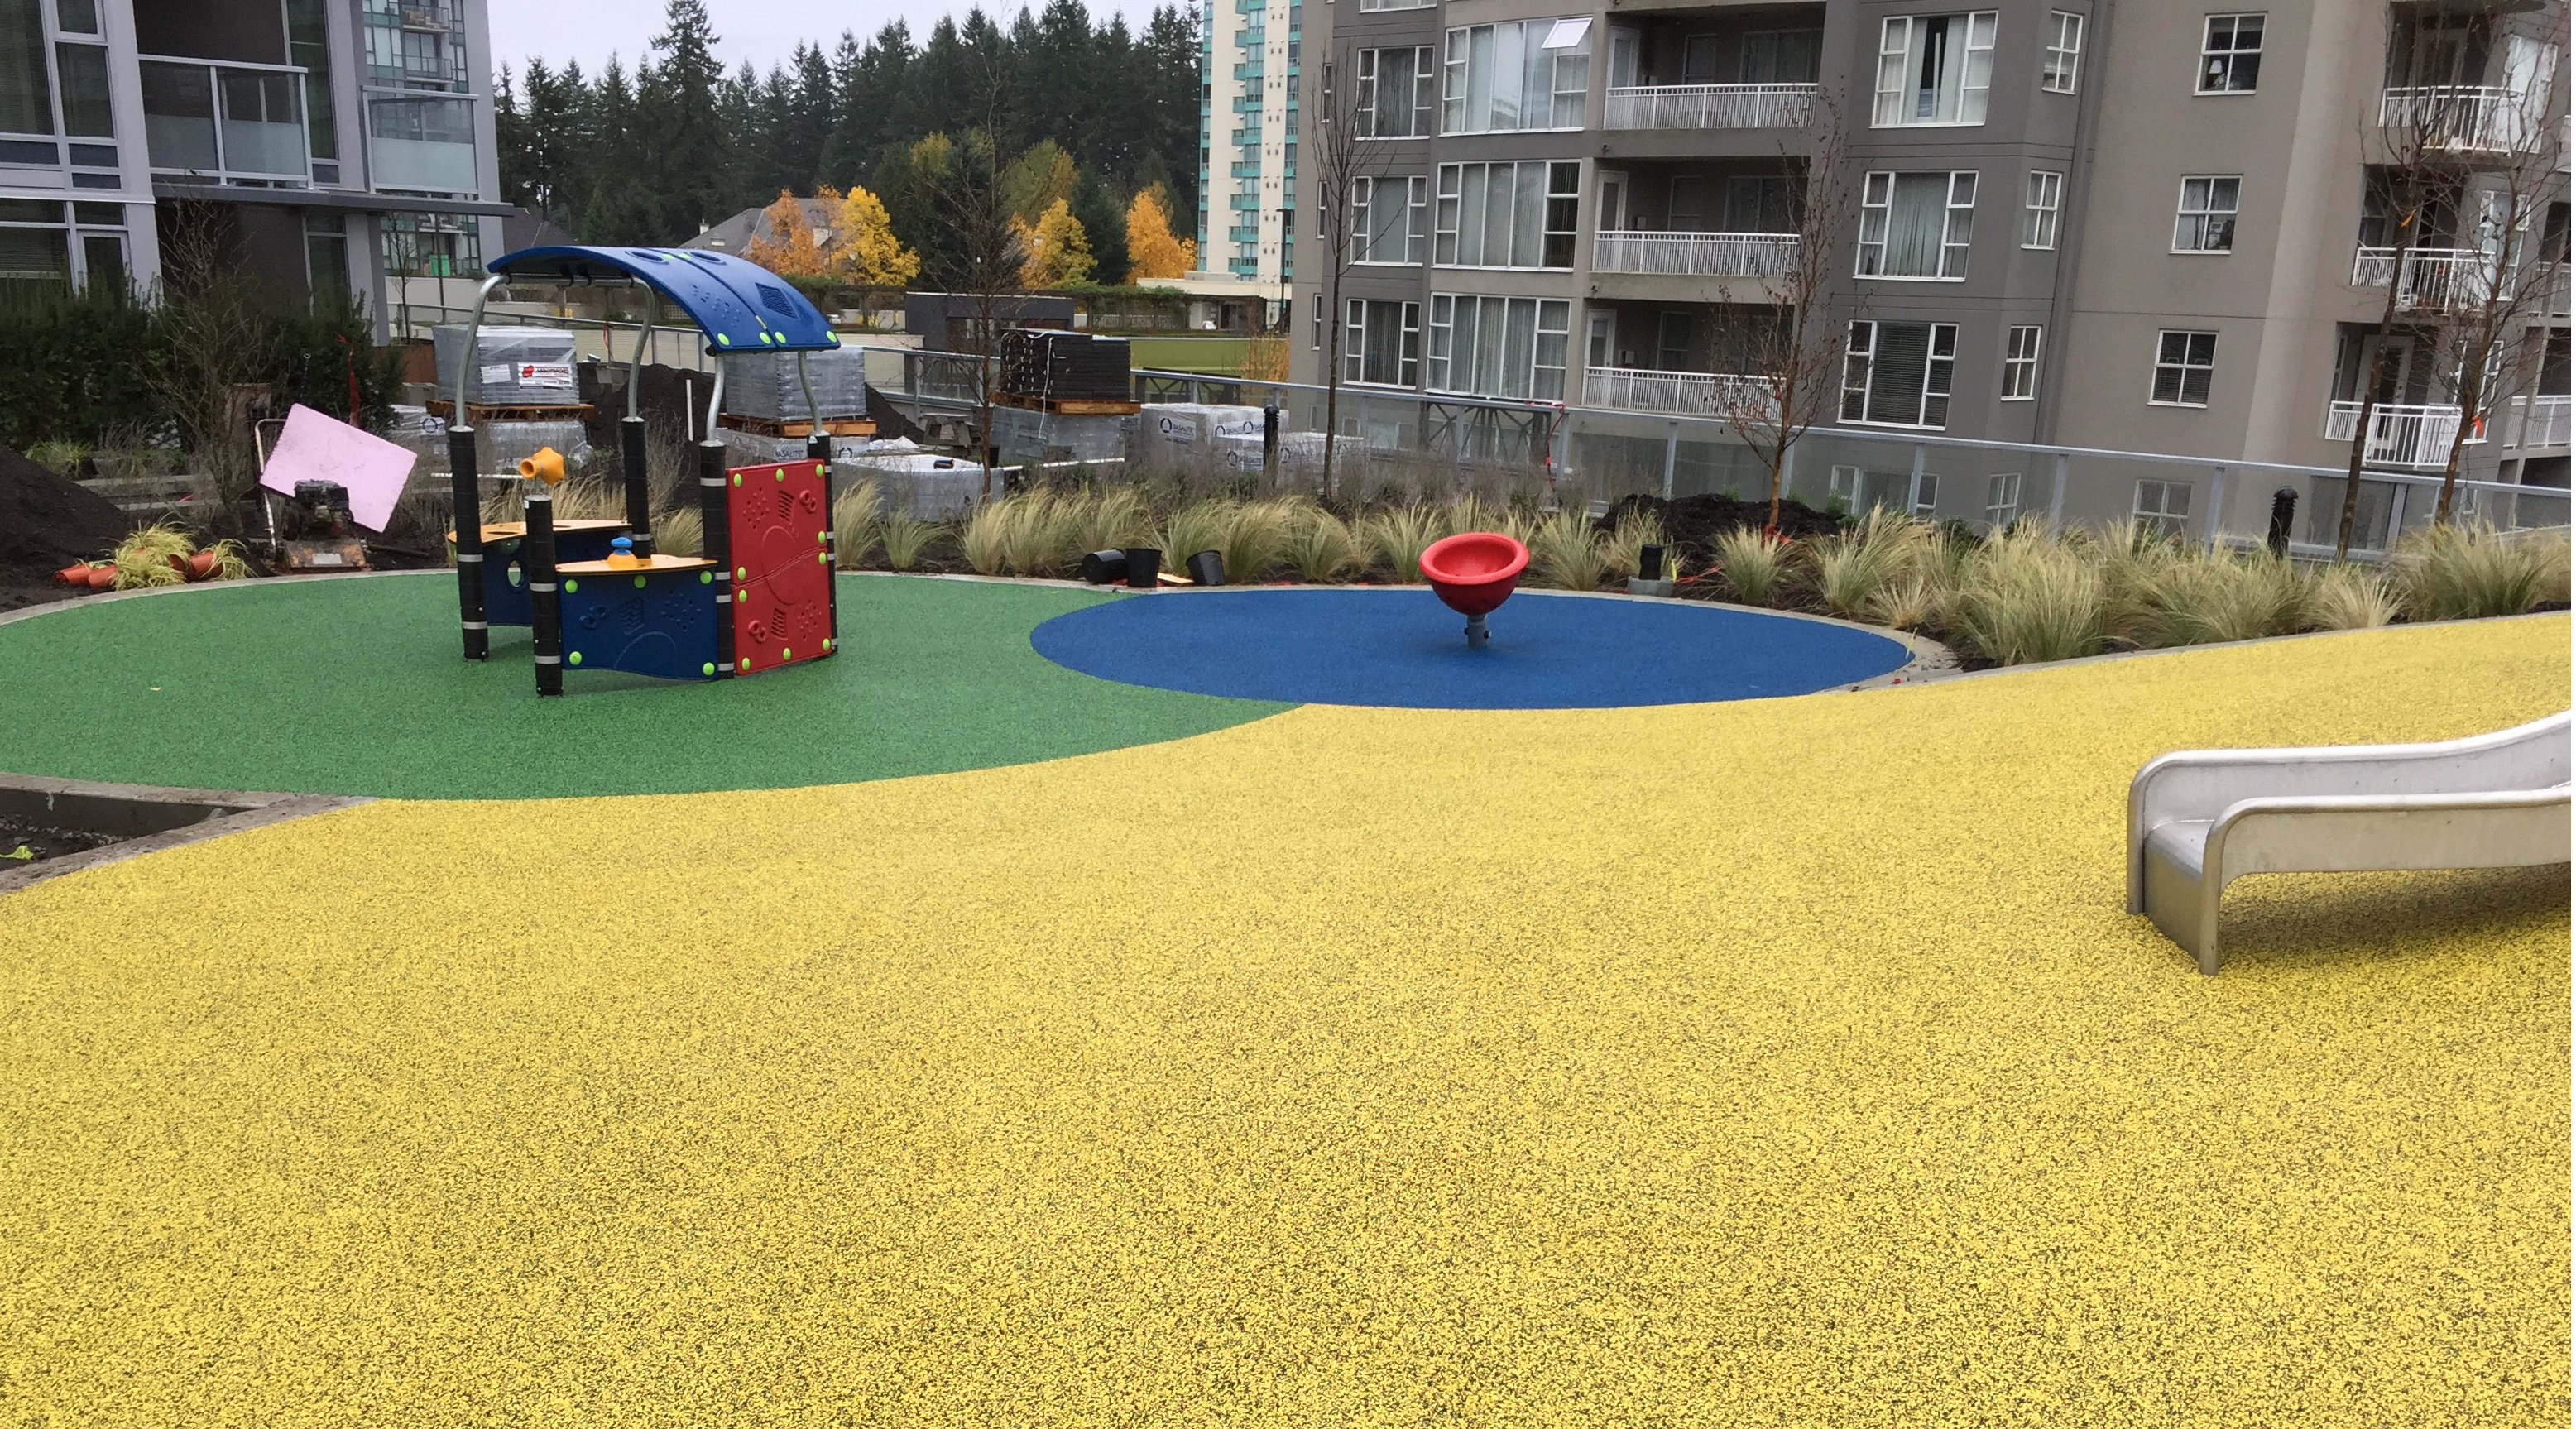 Rubber Playground Surfacing Rubber Mulch Rubber Surfaces - Spongy outdoor flooring